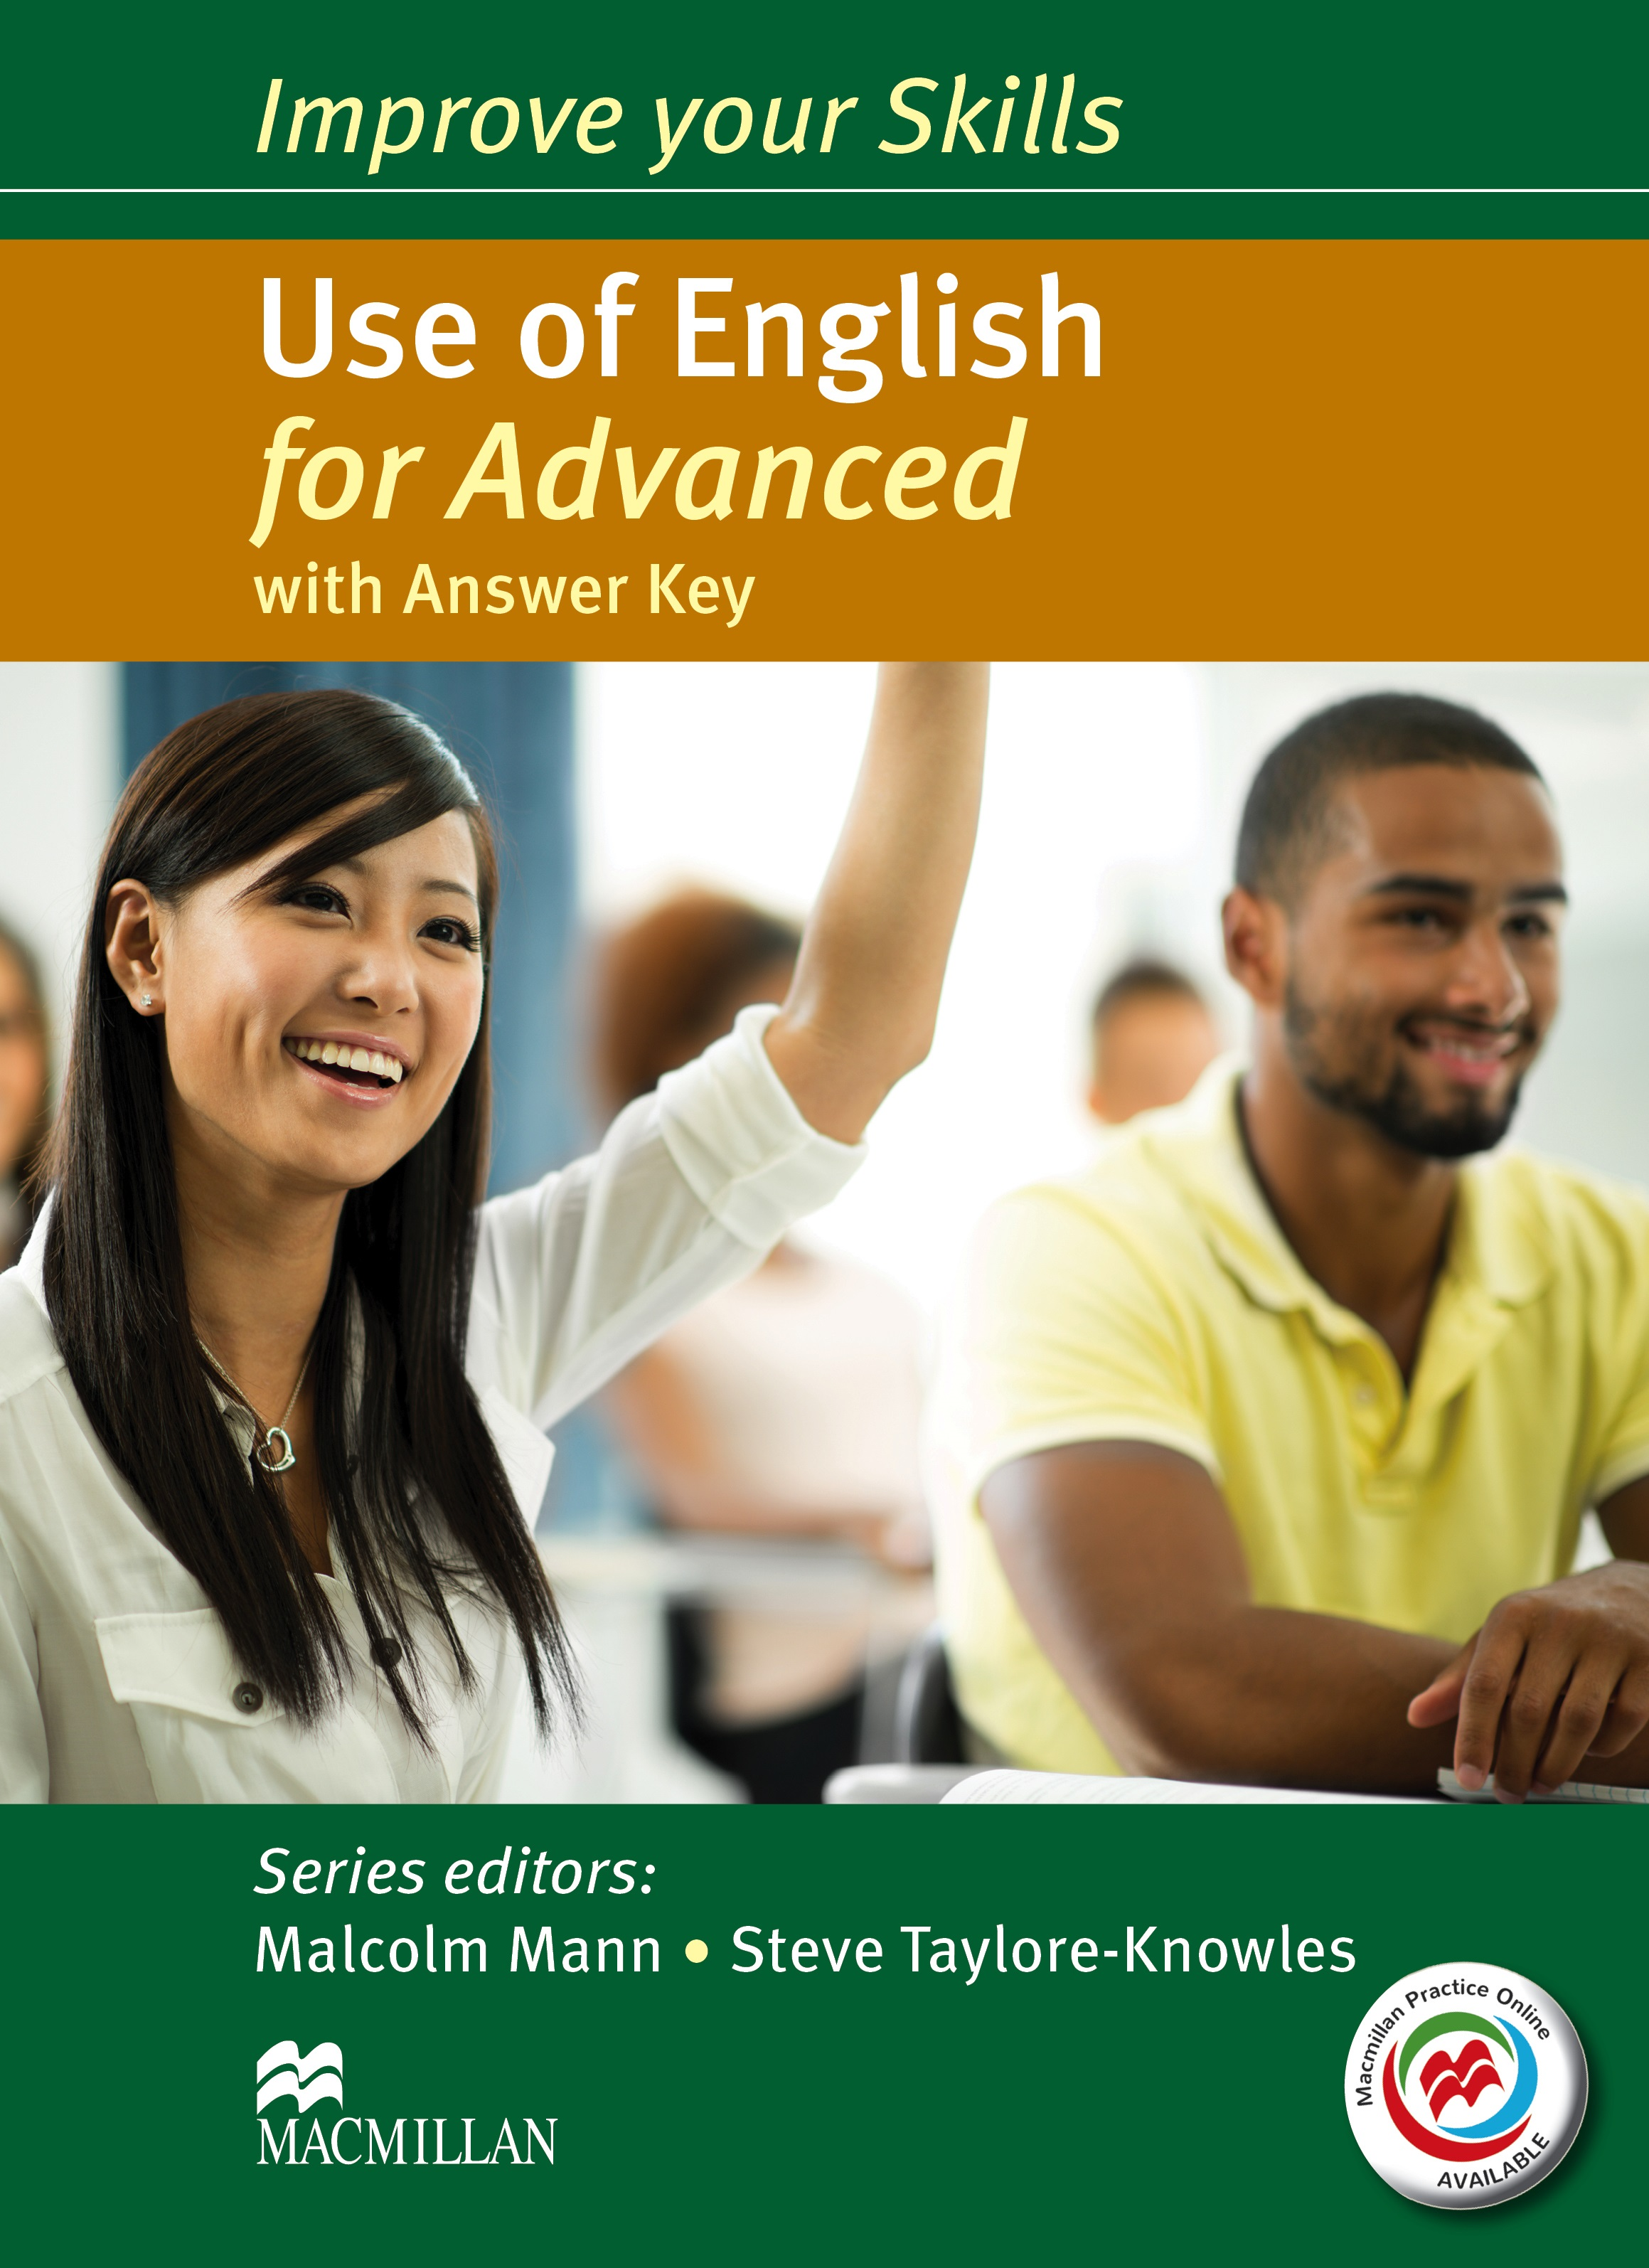 Improve your Skills: Use of English for Advanced Student